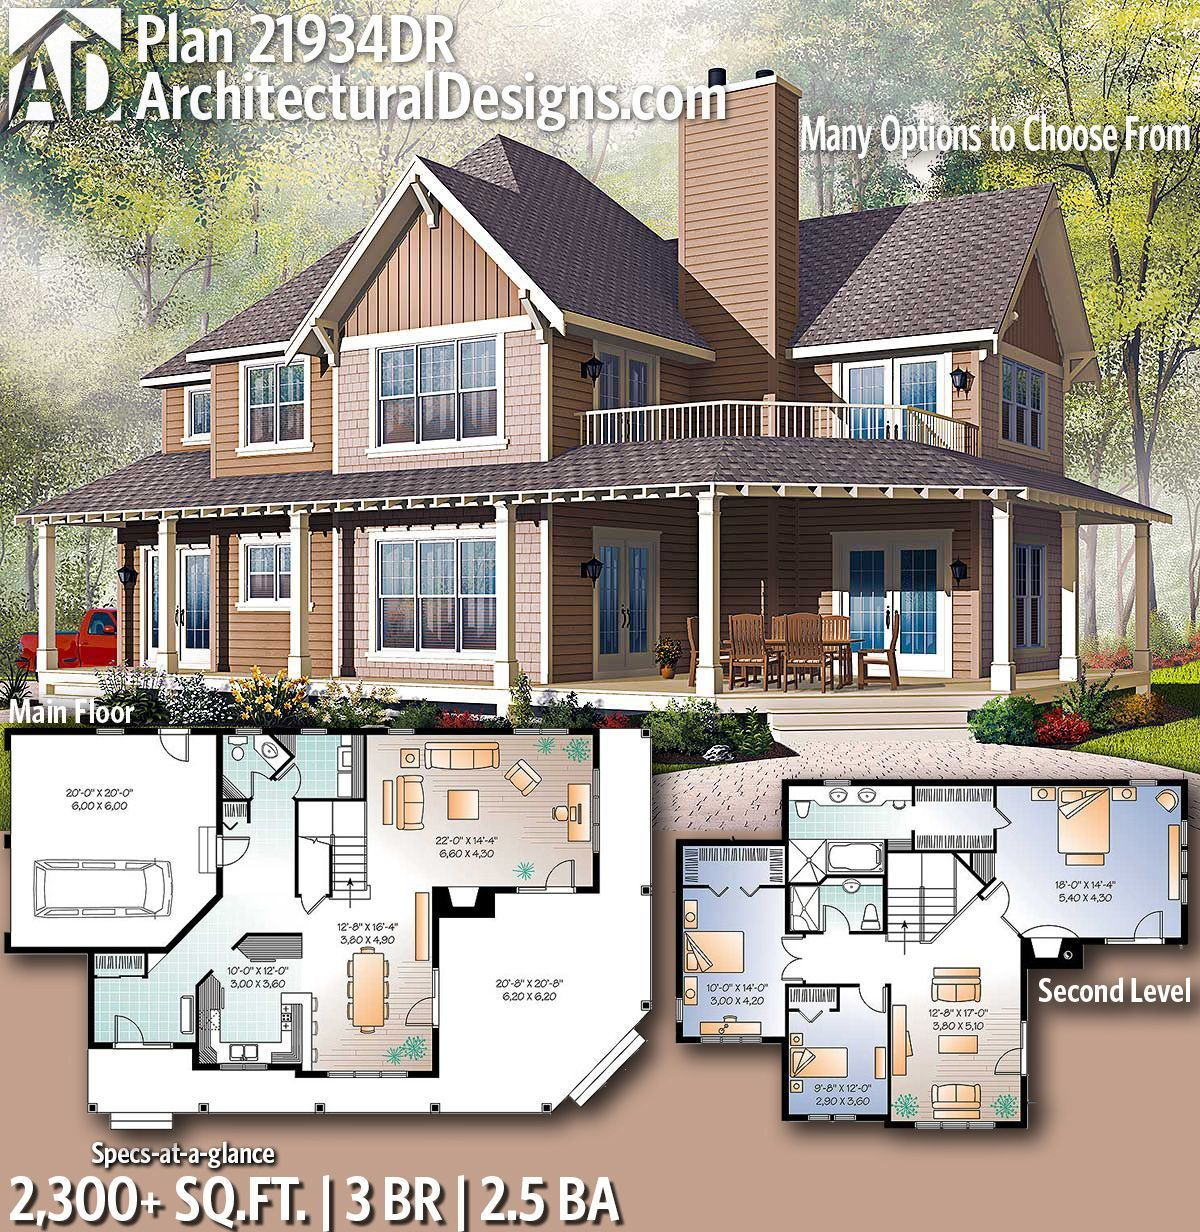 Architectural Designs Farmhouse Plan 21934DR with 3 Bedrooms 2.5 baths in 2,300+ Sq Ft. Ready when you are! Where do YOU want to build? #21934DR #adhouseplans #architecturaldesigns #houseplans #architecture #newhome #newconstruction #newhouse #homedesign #homeplans #architecture #home #farmhouse